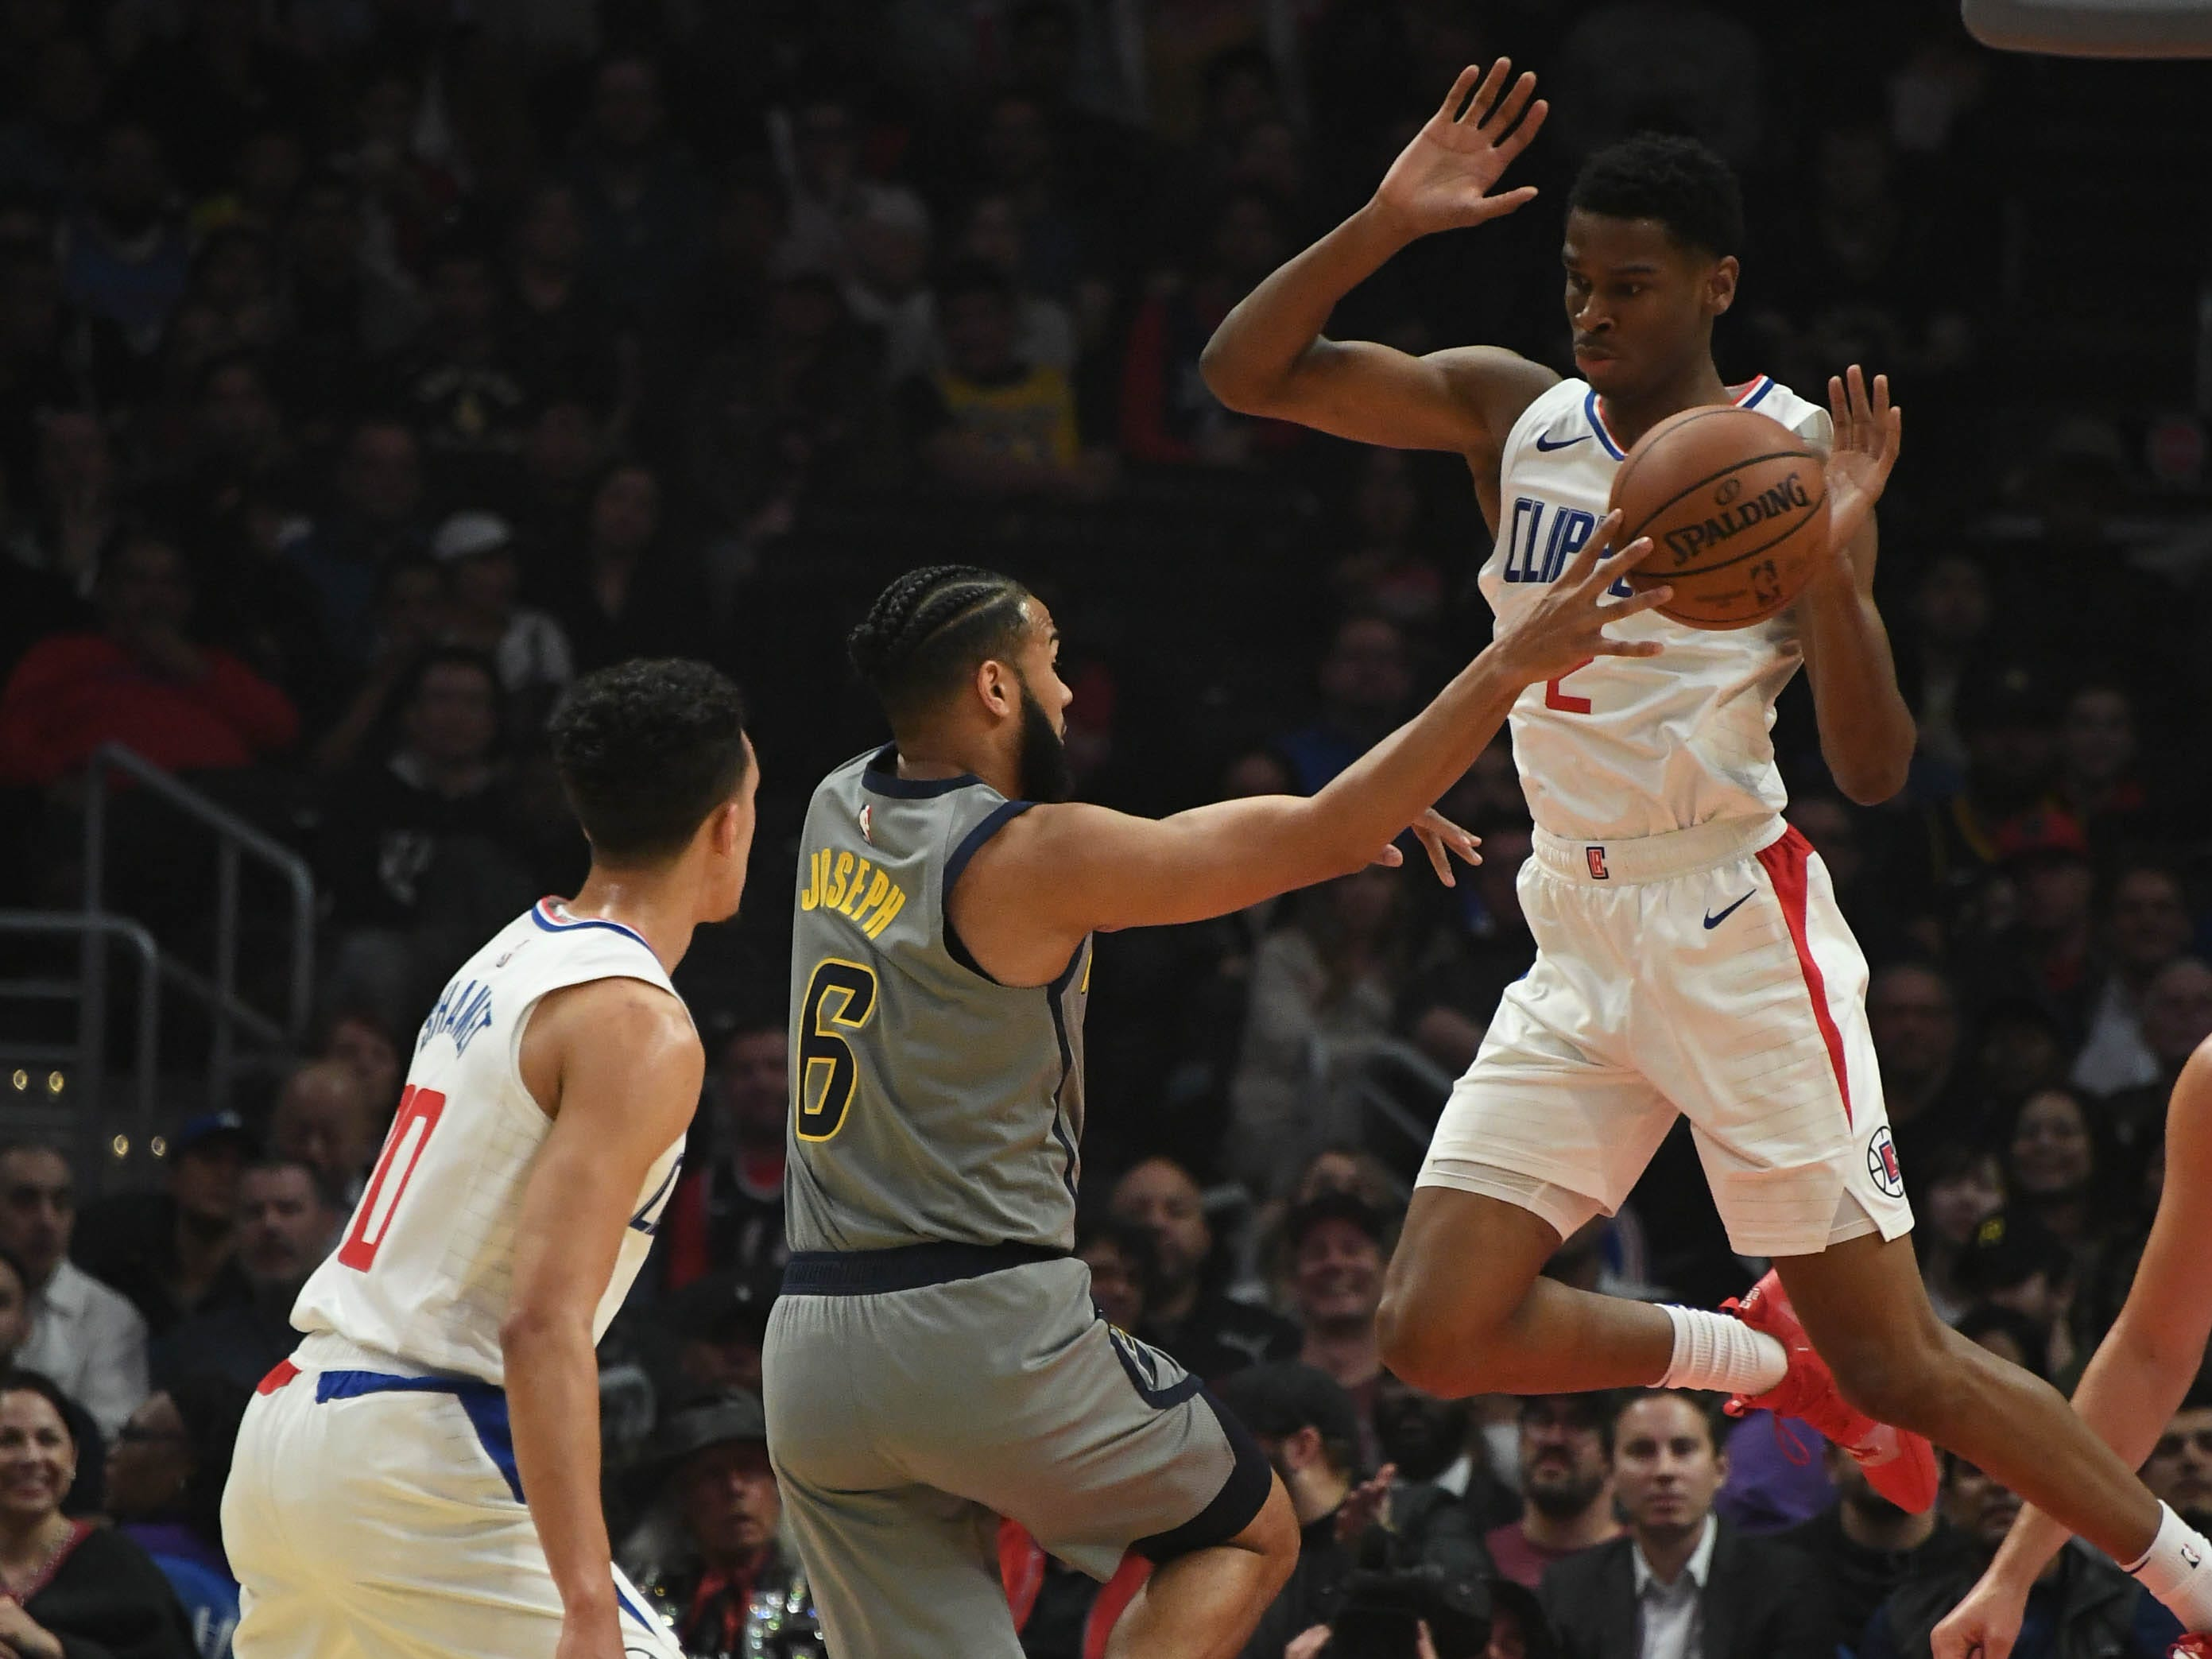 Mar 19, 2019; Los Angeles, CA, USA; Indiana Pacers guard Cory Joseph (6) passes the ball away from LA Clippers guard Shai Gilgeous-Alexander (2)  in the first half at the Staples Center.